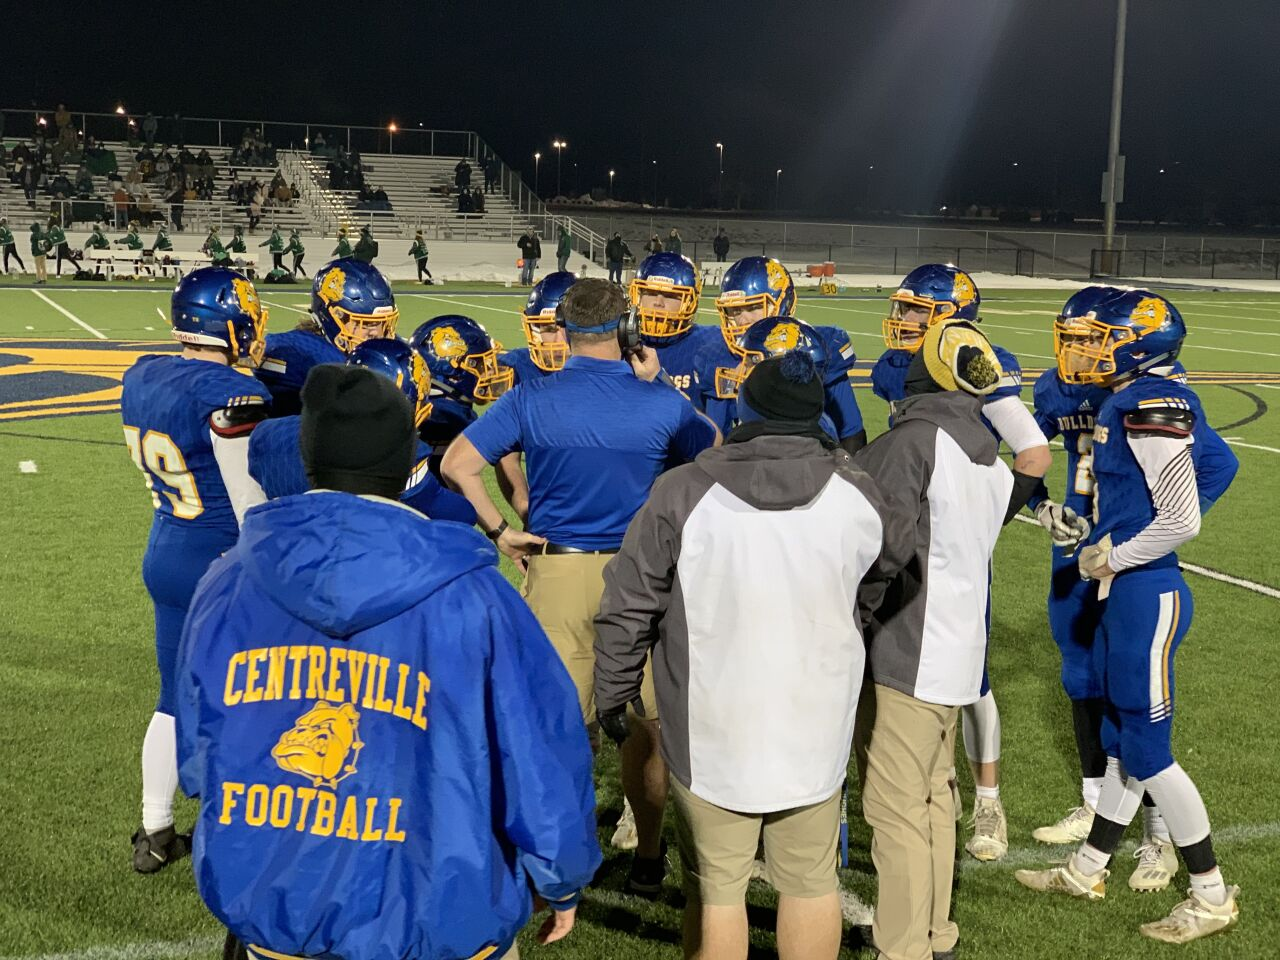 Centreville football prepares for the state semifinals